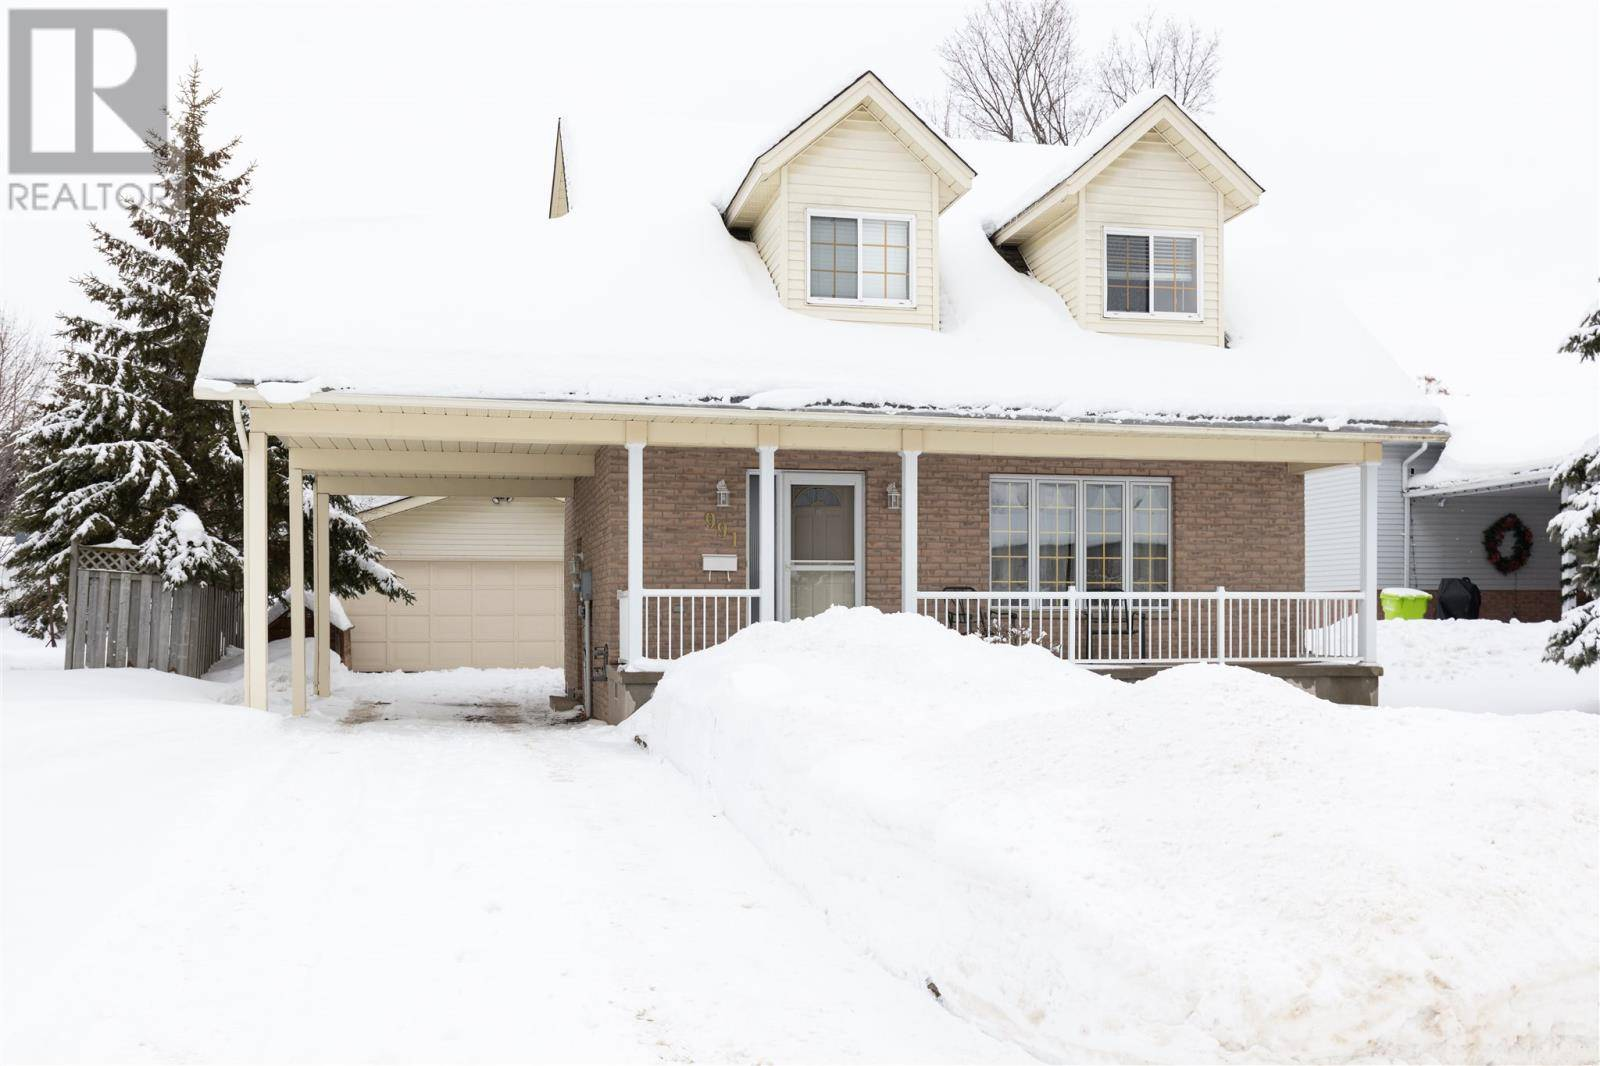 House for sale at 991 Lake St Sault Ste. Marie Ontario - MLS: SM127823